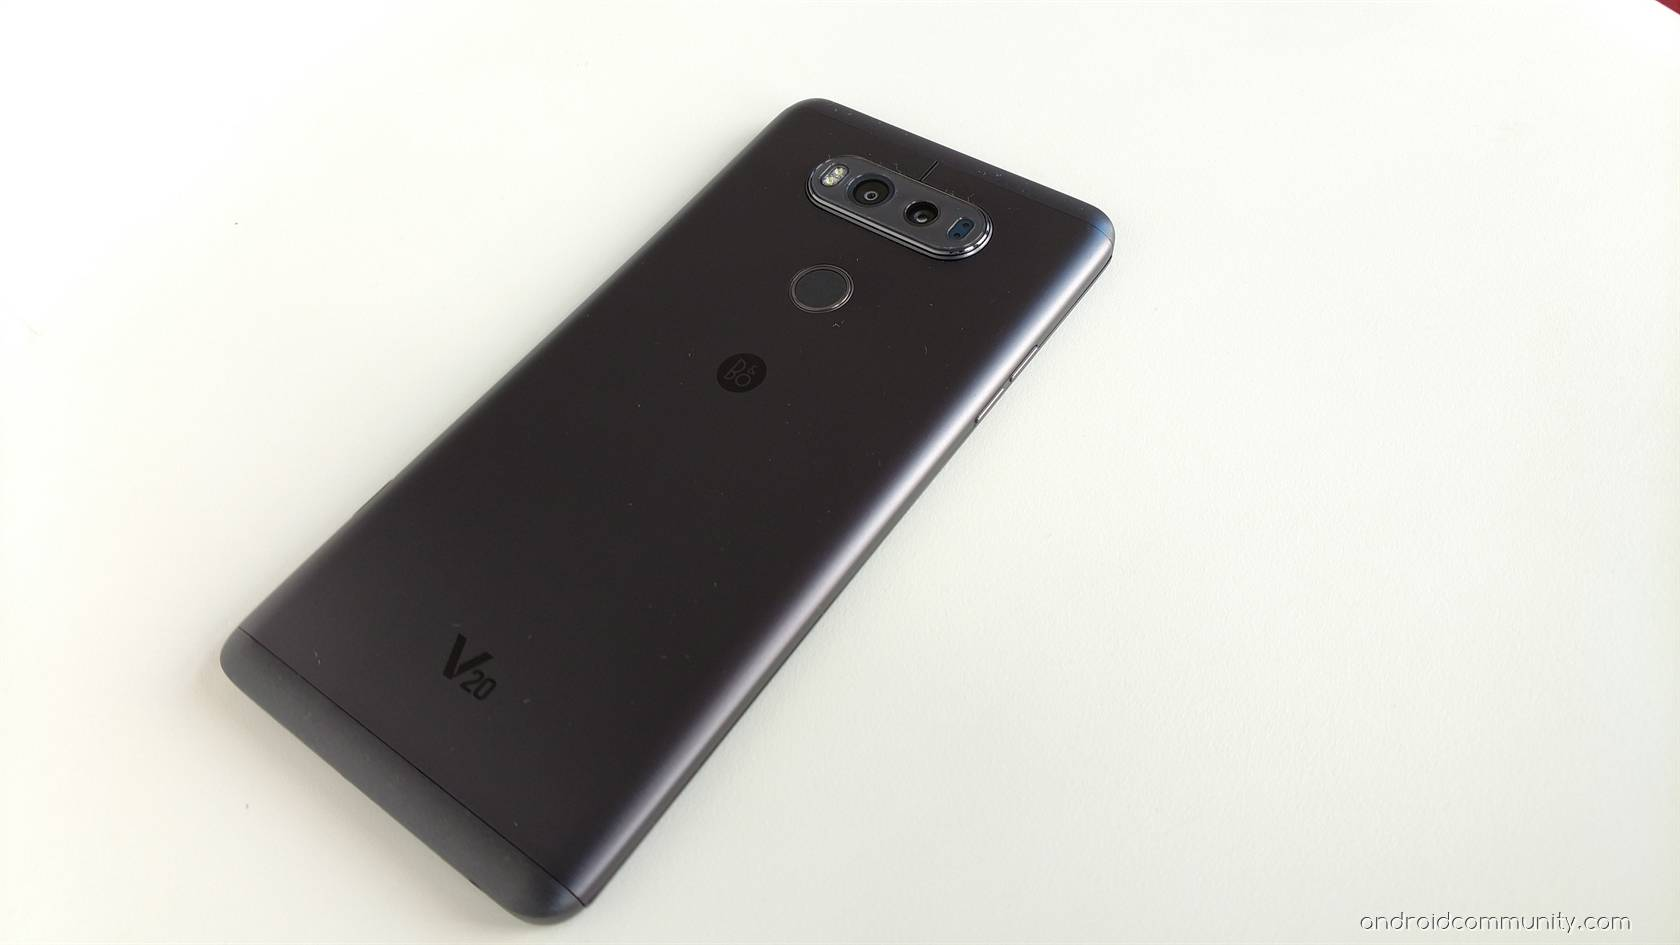 LG V20 first look: trading hype for maturity